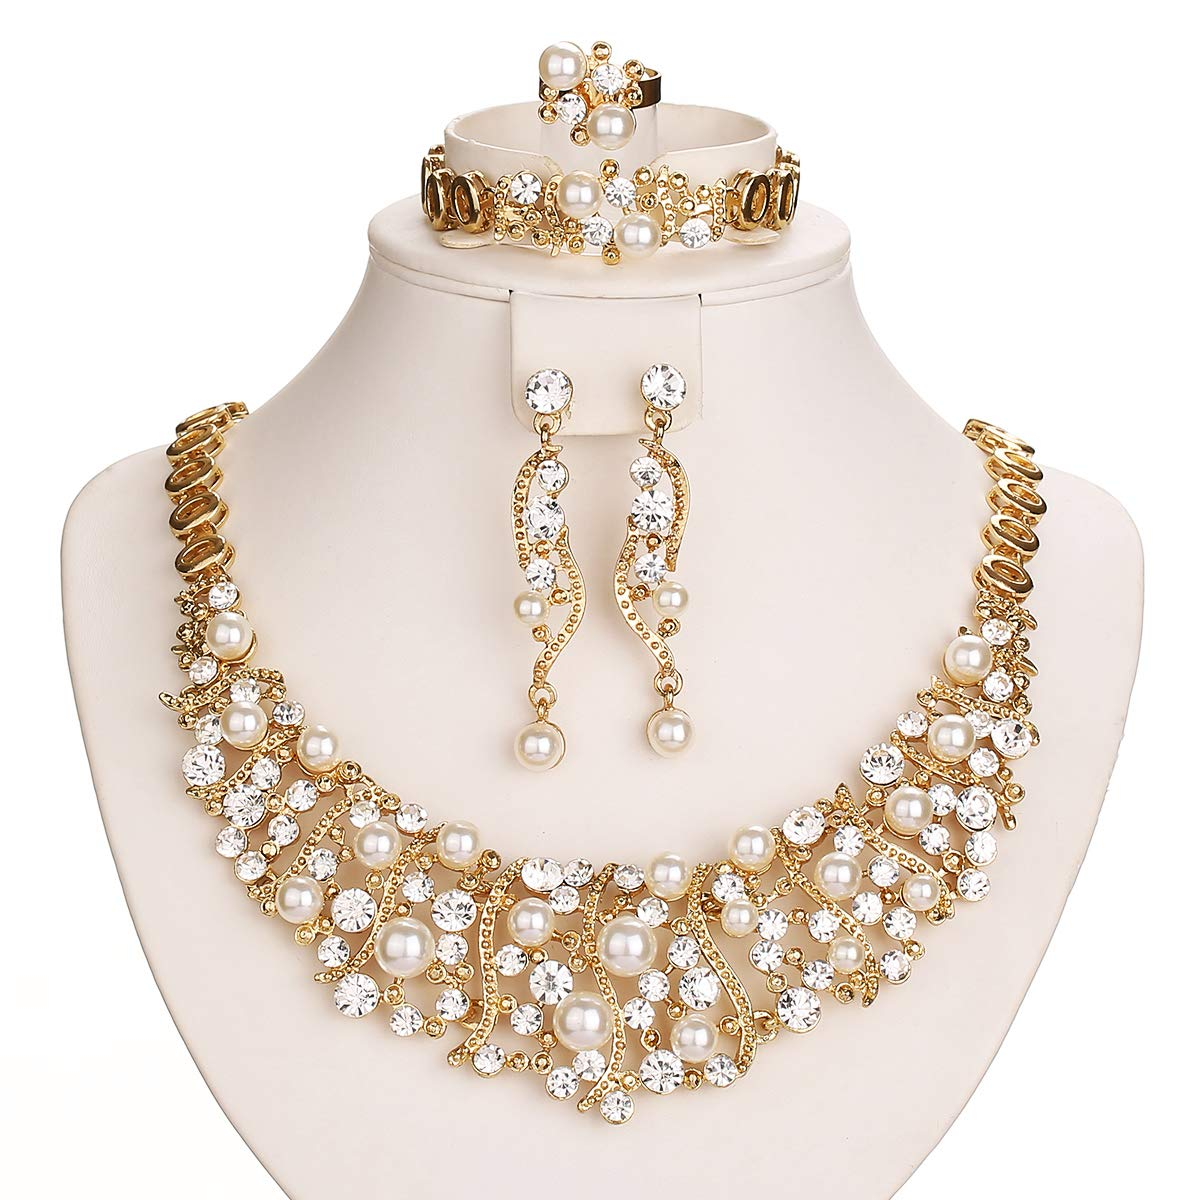 Gold Plated Luxury Crystal and Simulated-Pearl Beads Necklaces Jewelry Set 5 Pieces